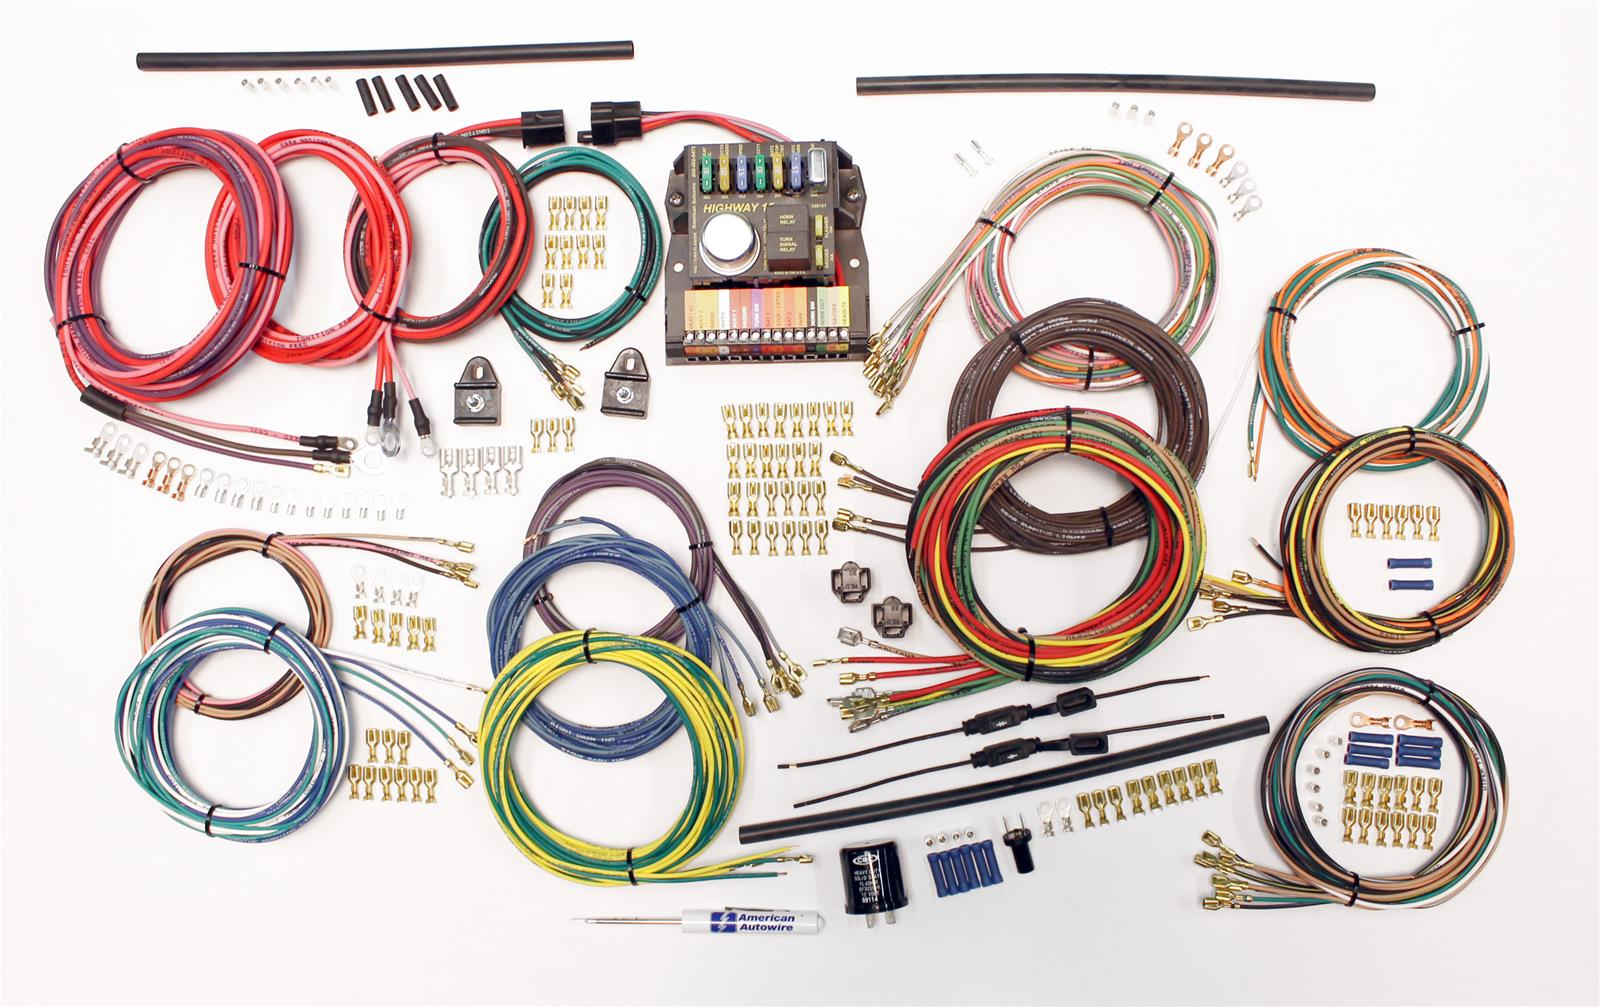 American Autowire Classic Update Series Wiring Harness Kits 510419 Vw Beetle Diagram 1968 Free Shipping On Orders Over 49